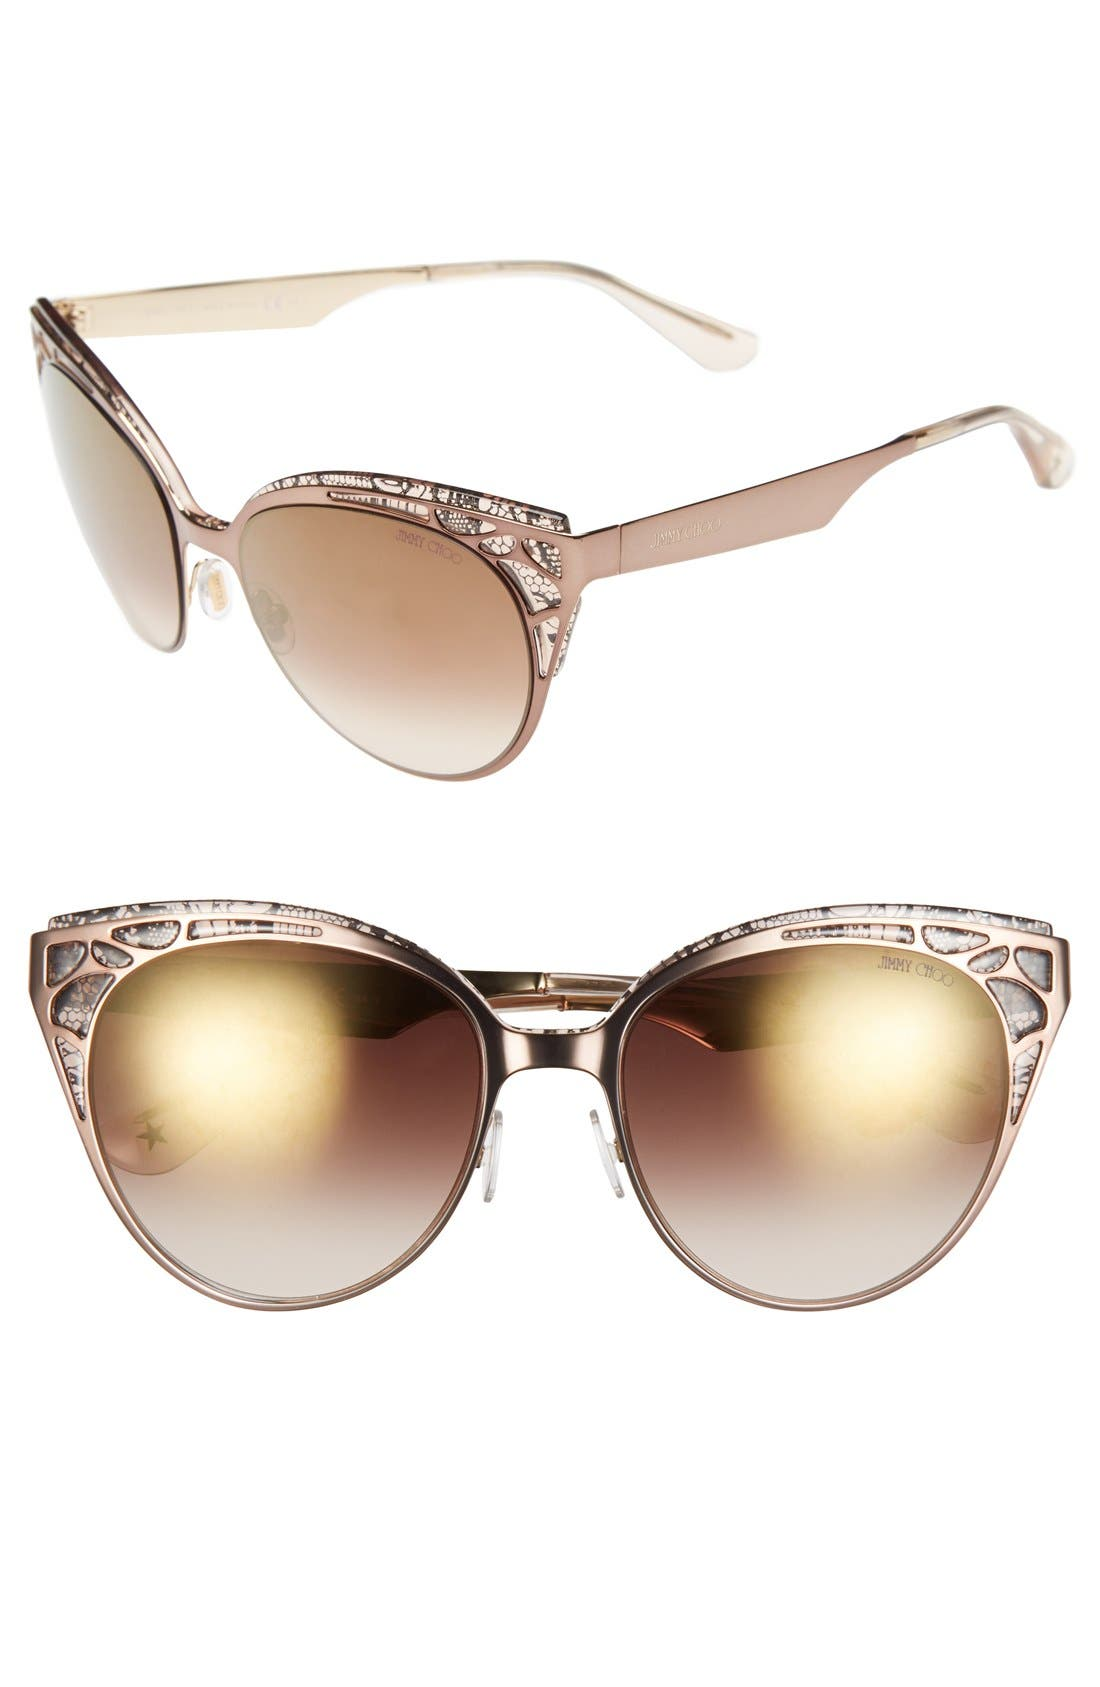 JIMMY CHOO 'Estelle' Metal Cat Eye Crystal Lace